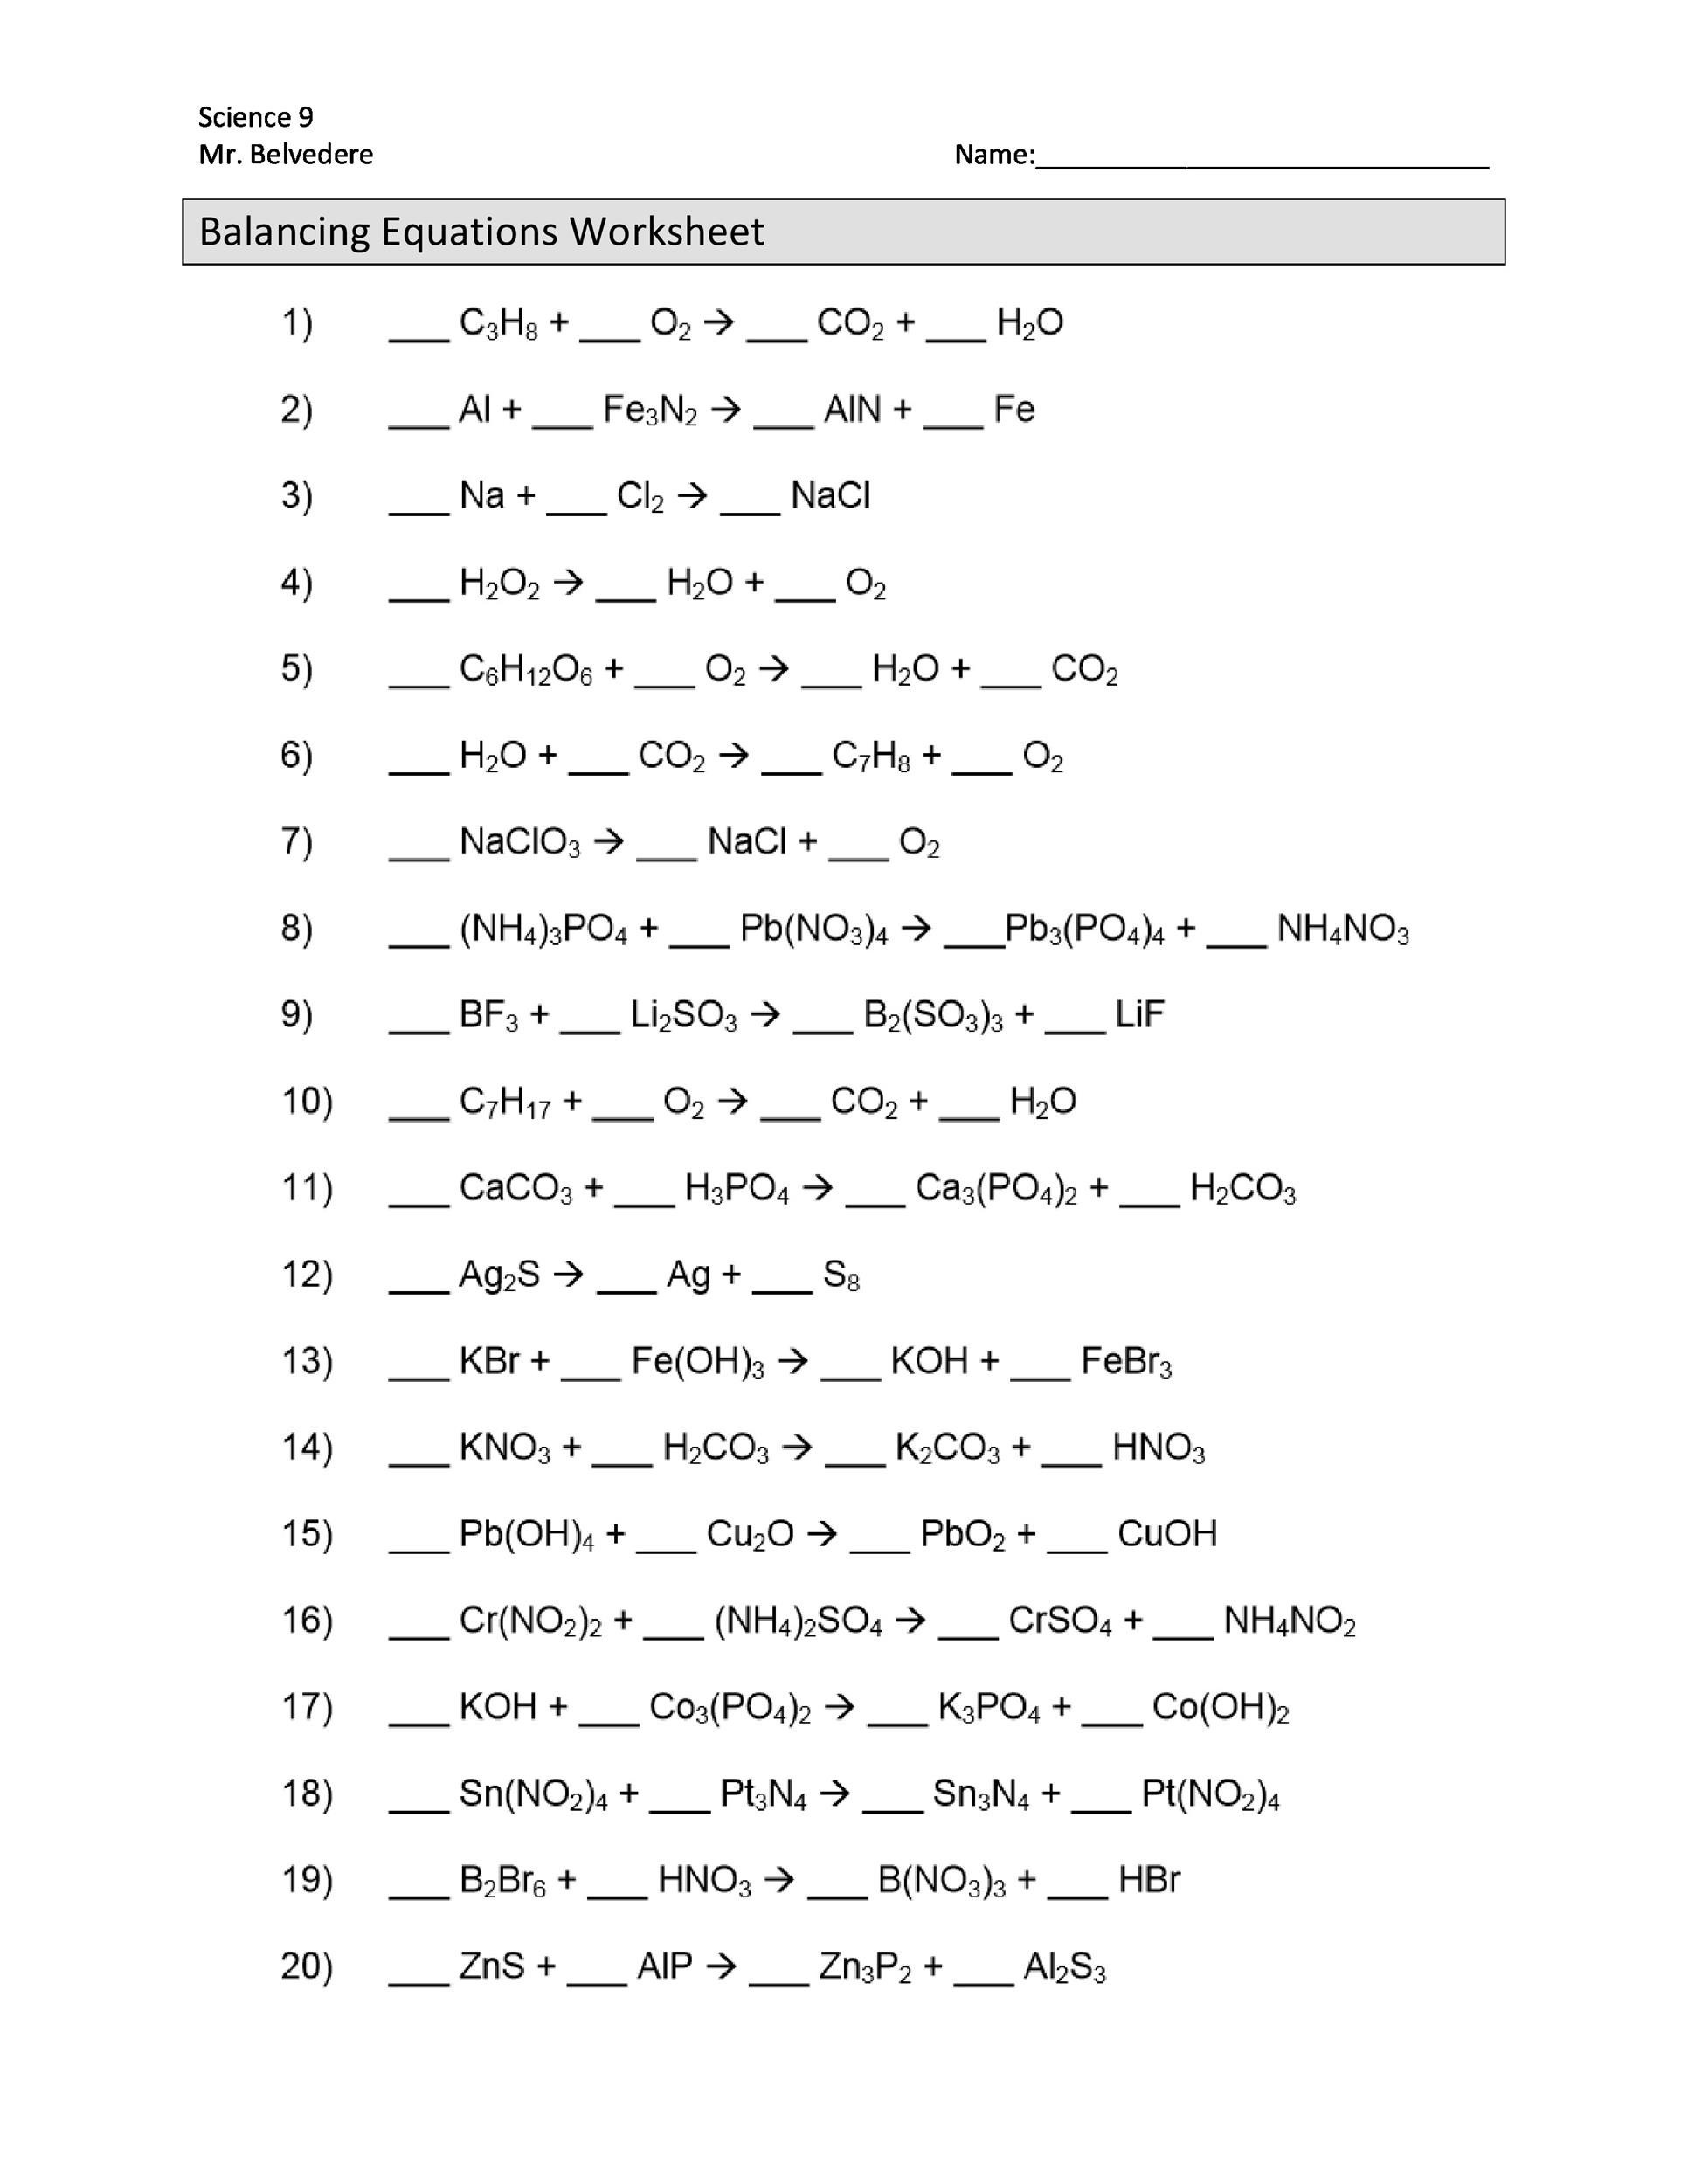 balancing equations worksheets with answers - Balancing Equations Worksheet Answers